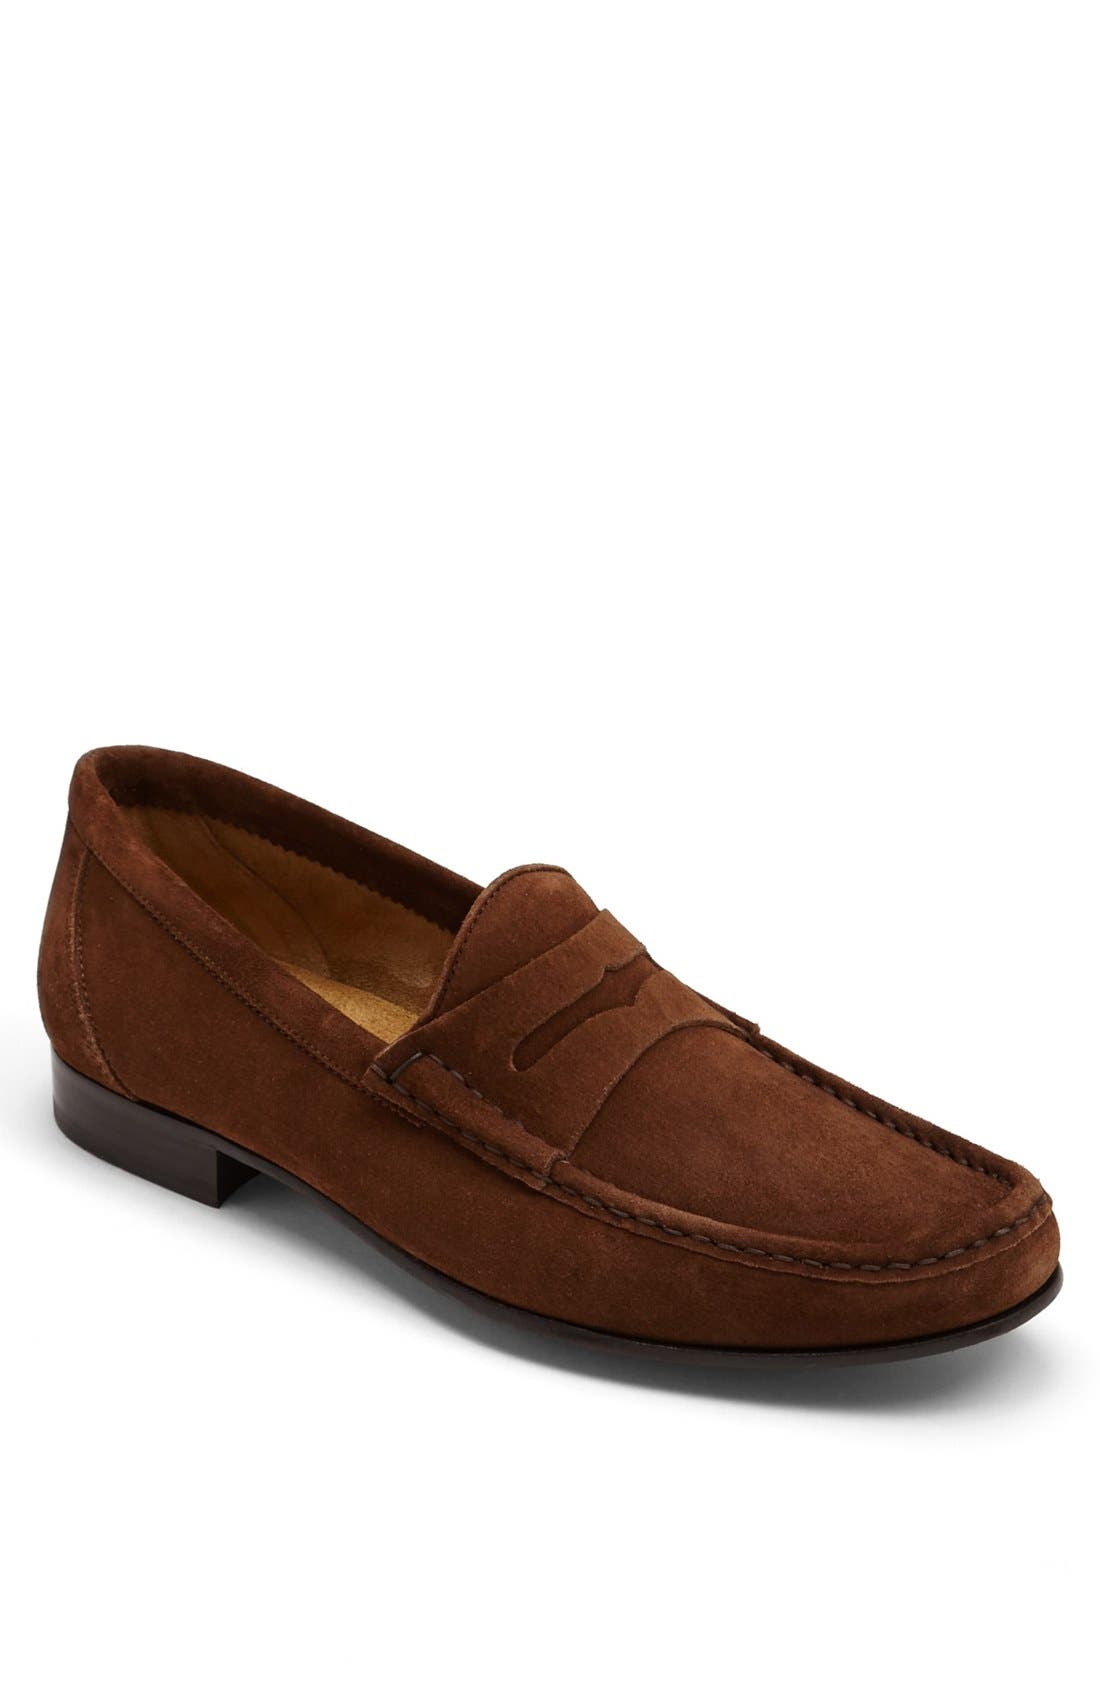 Alternate Image 1 Selected - Donald J Pliner 'Naper' Penny Loafer